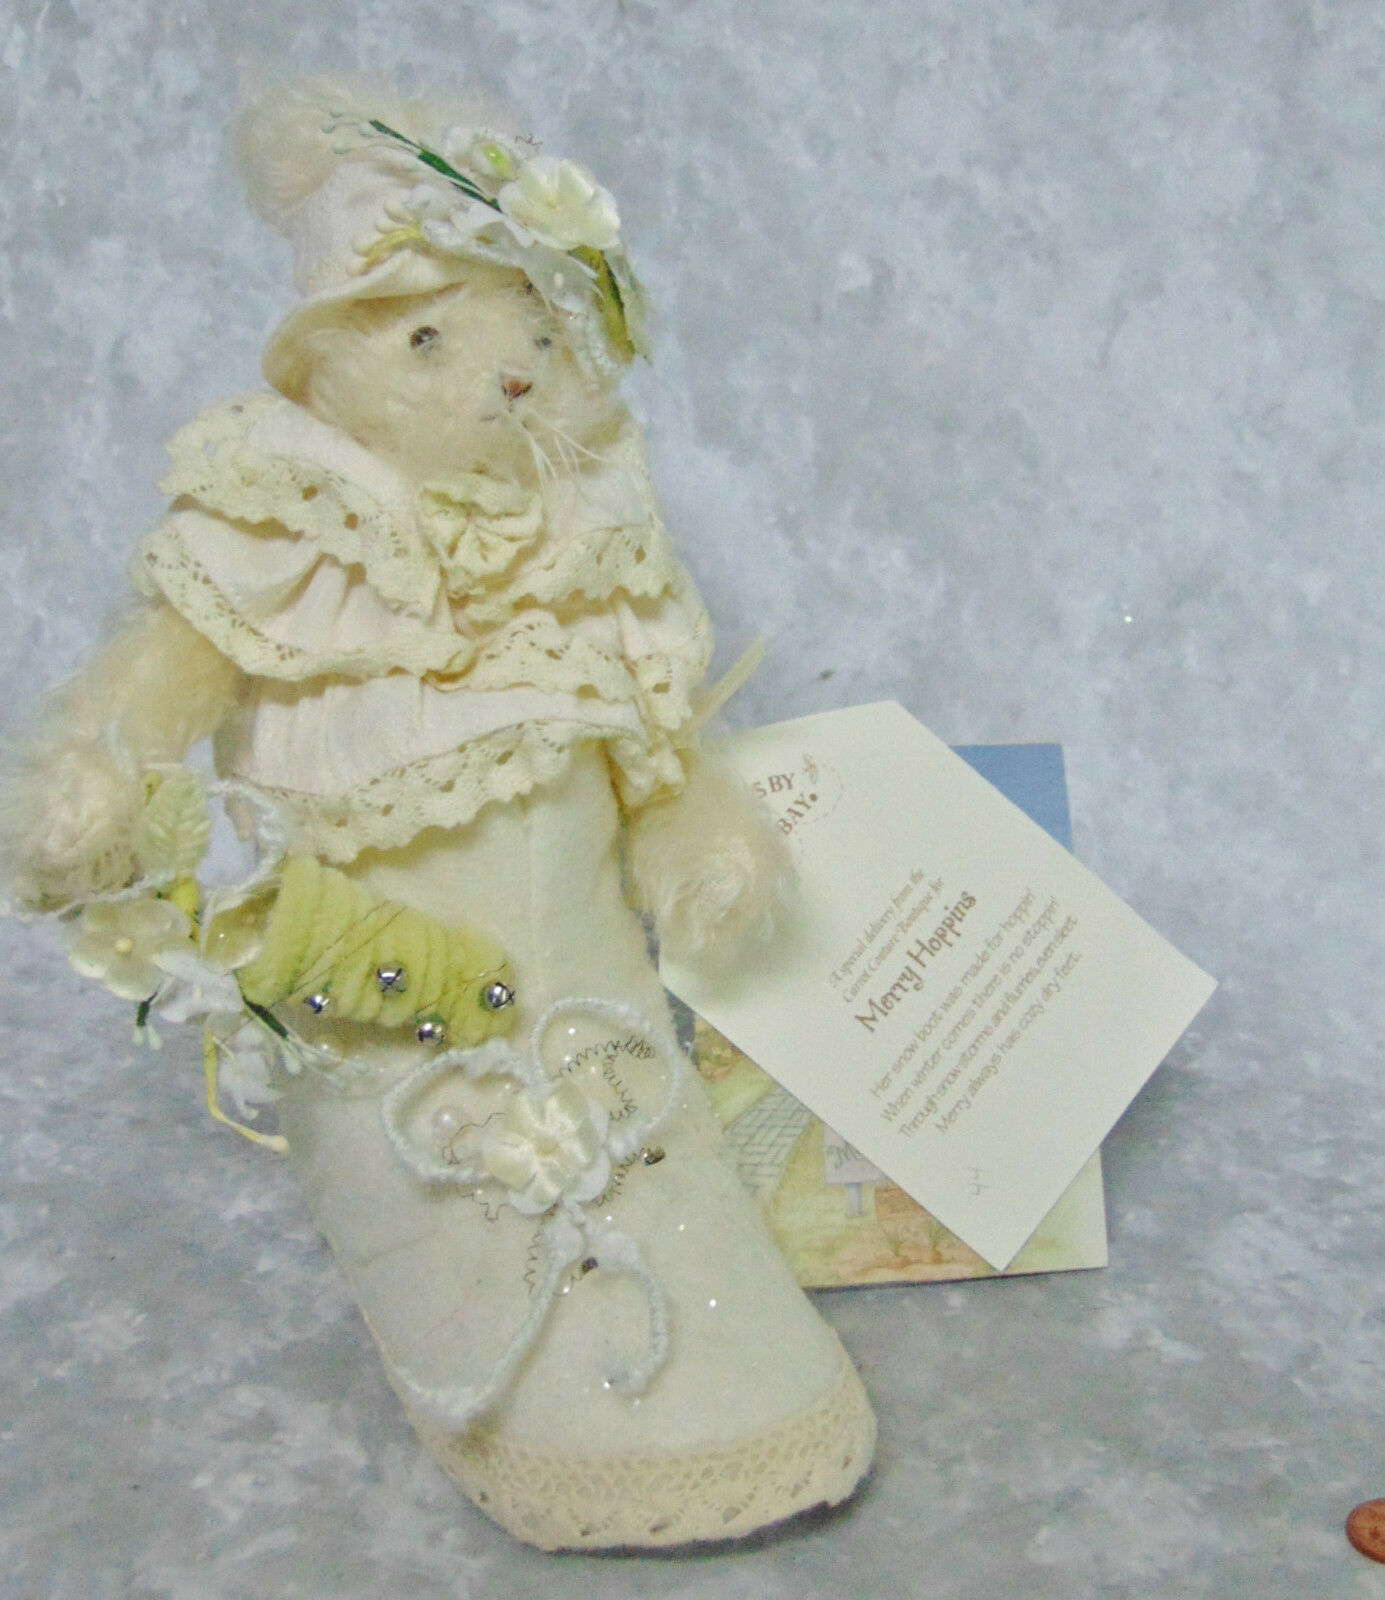 NEW Bunnies By The Bay Mohair MERRY HOPPINS Mohair Bay Bunny Rabbit Snow Stiefel Lace Schuhe LE f9ee26